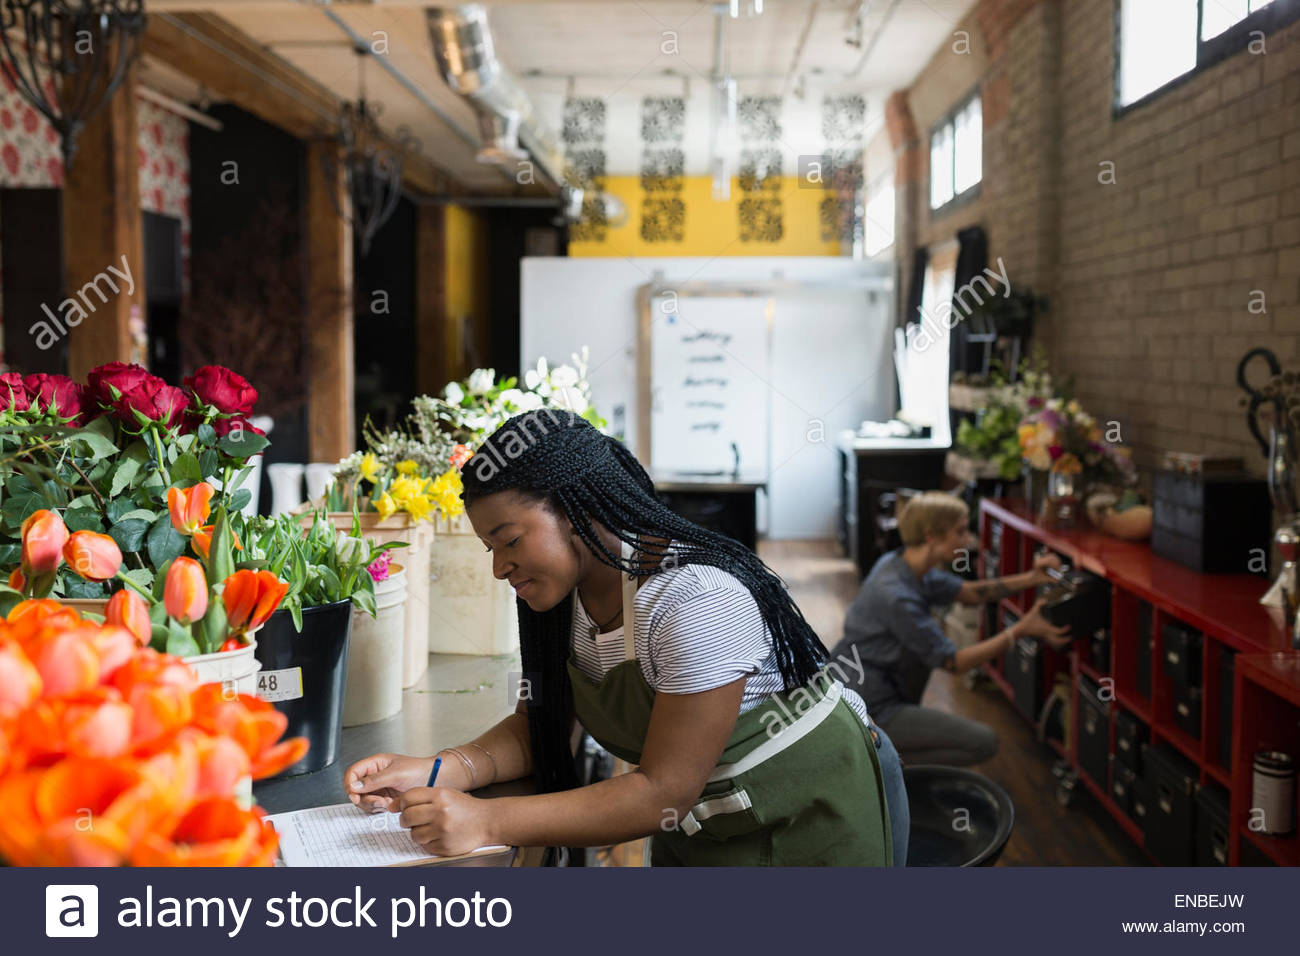 Florist with clipboard checking flower inventory flower shop - Stock Image